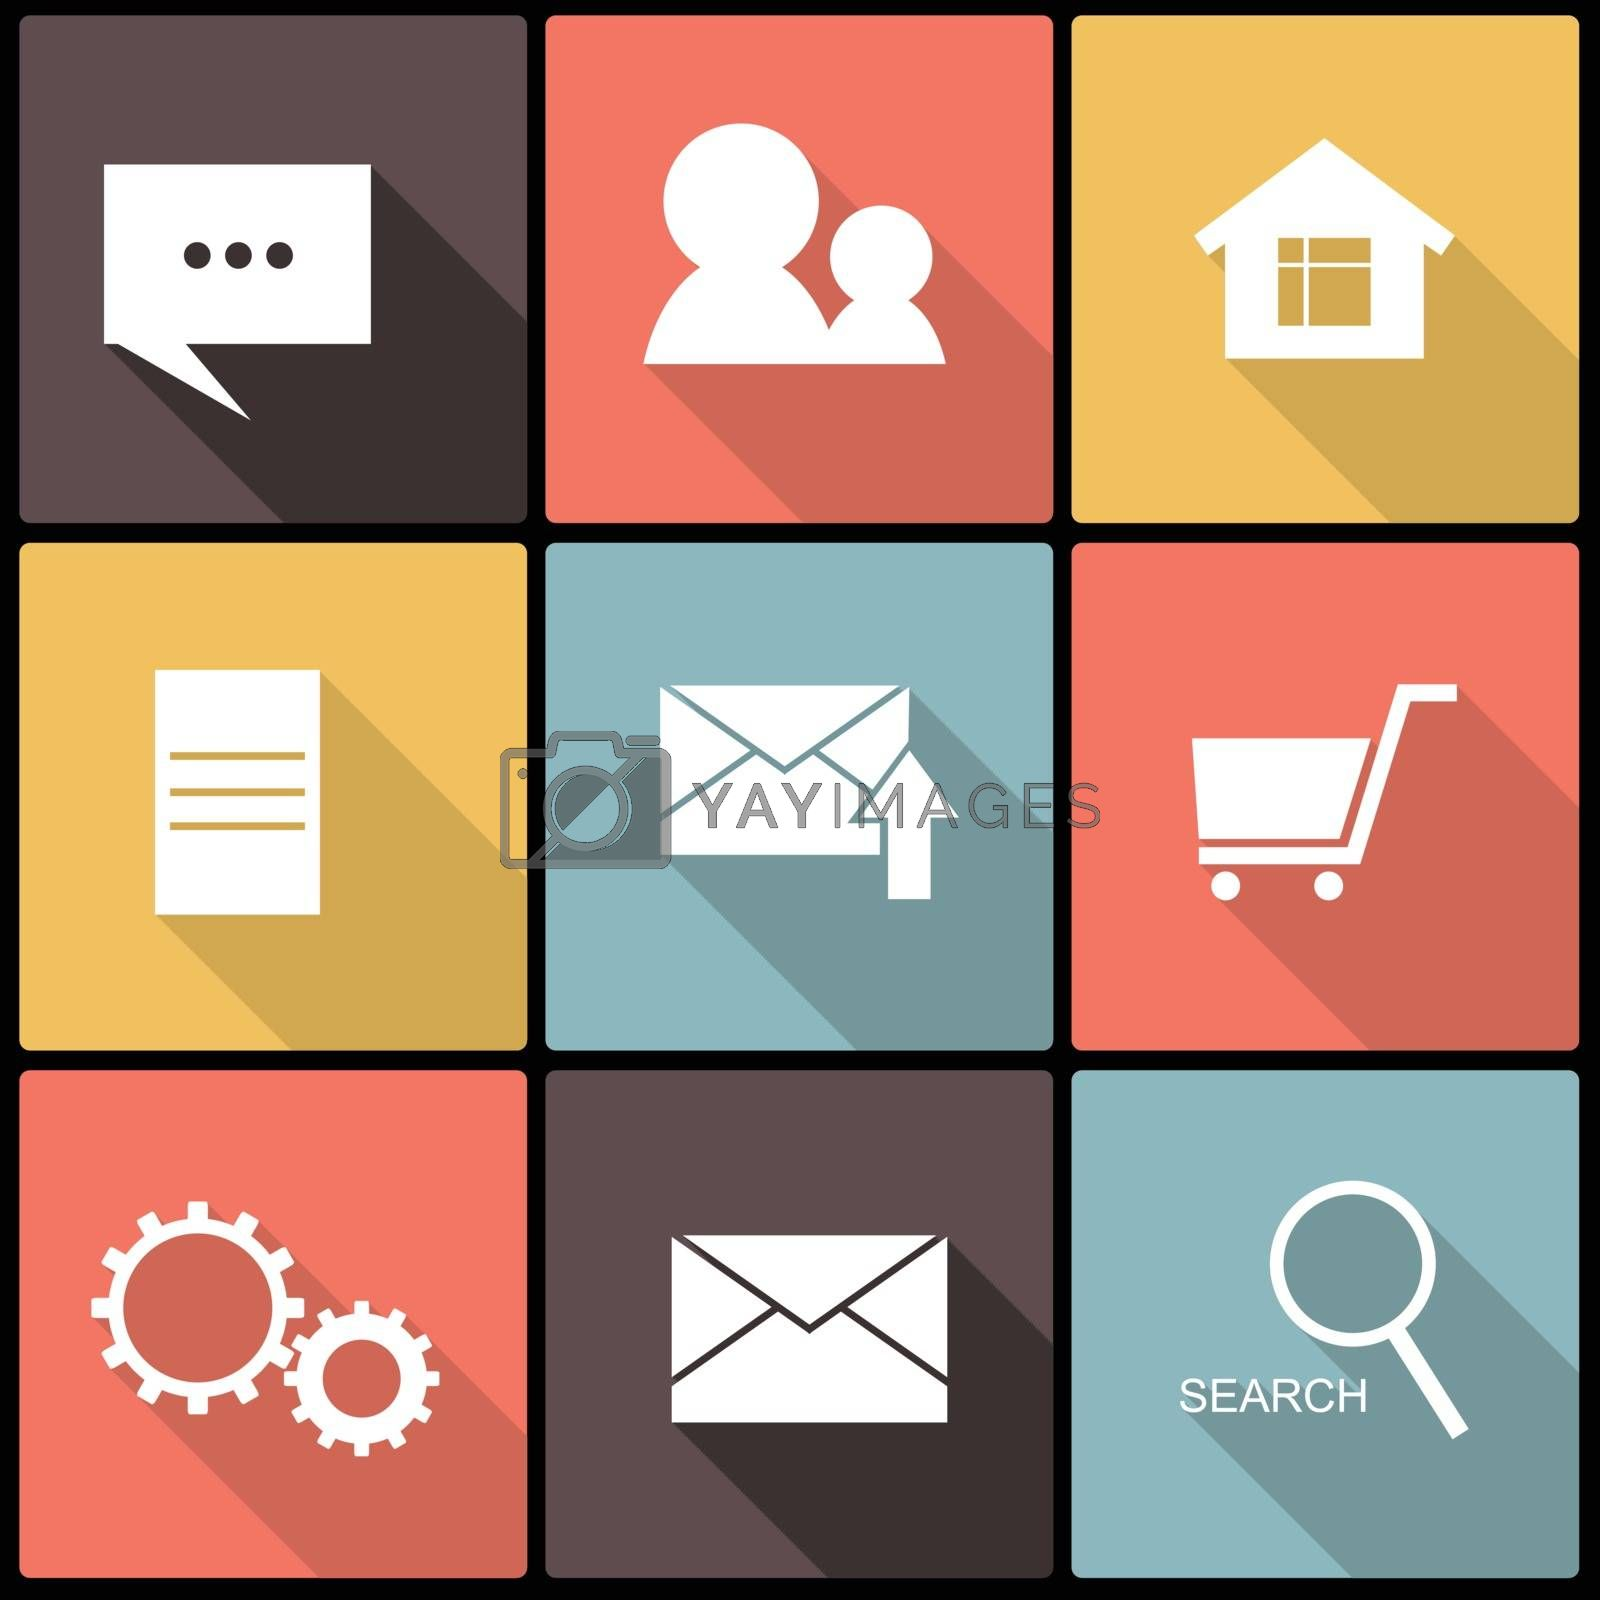 Royalty free image of web icons in Flat Design for Web and Mobile by LittleCuckoo